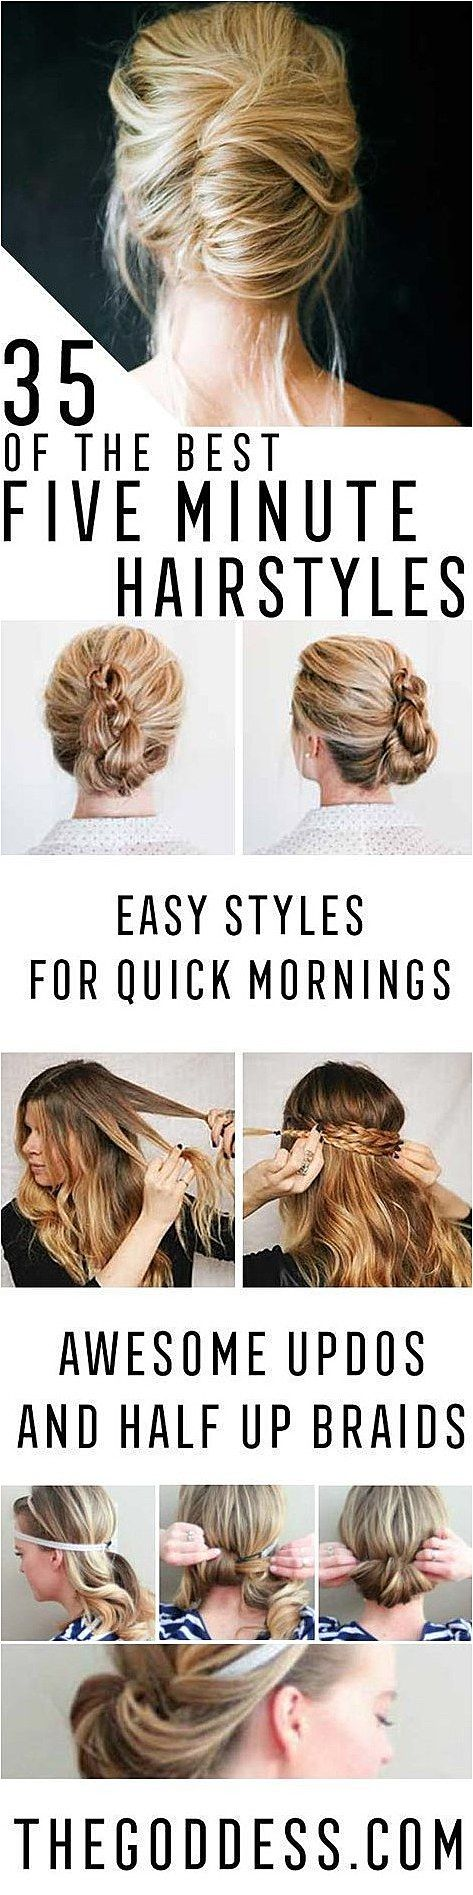 366 best easy braided hairstyles images on pinterest best 5 minute hairstyles quick and easy hairstyles and haircuts for long hair that are super simple and great for busy mornings or for school solutioingenieria Image collections